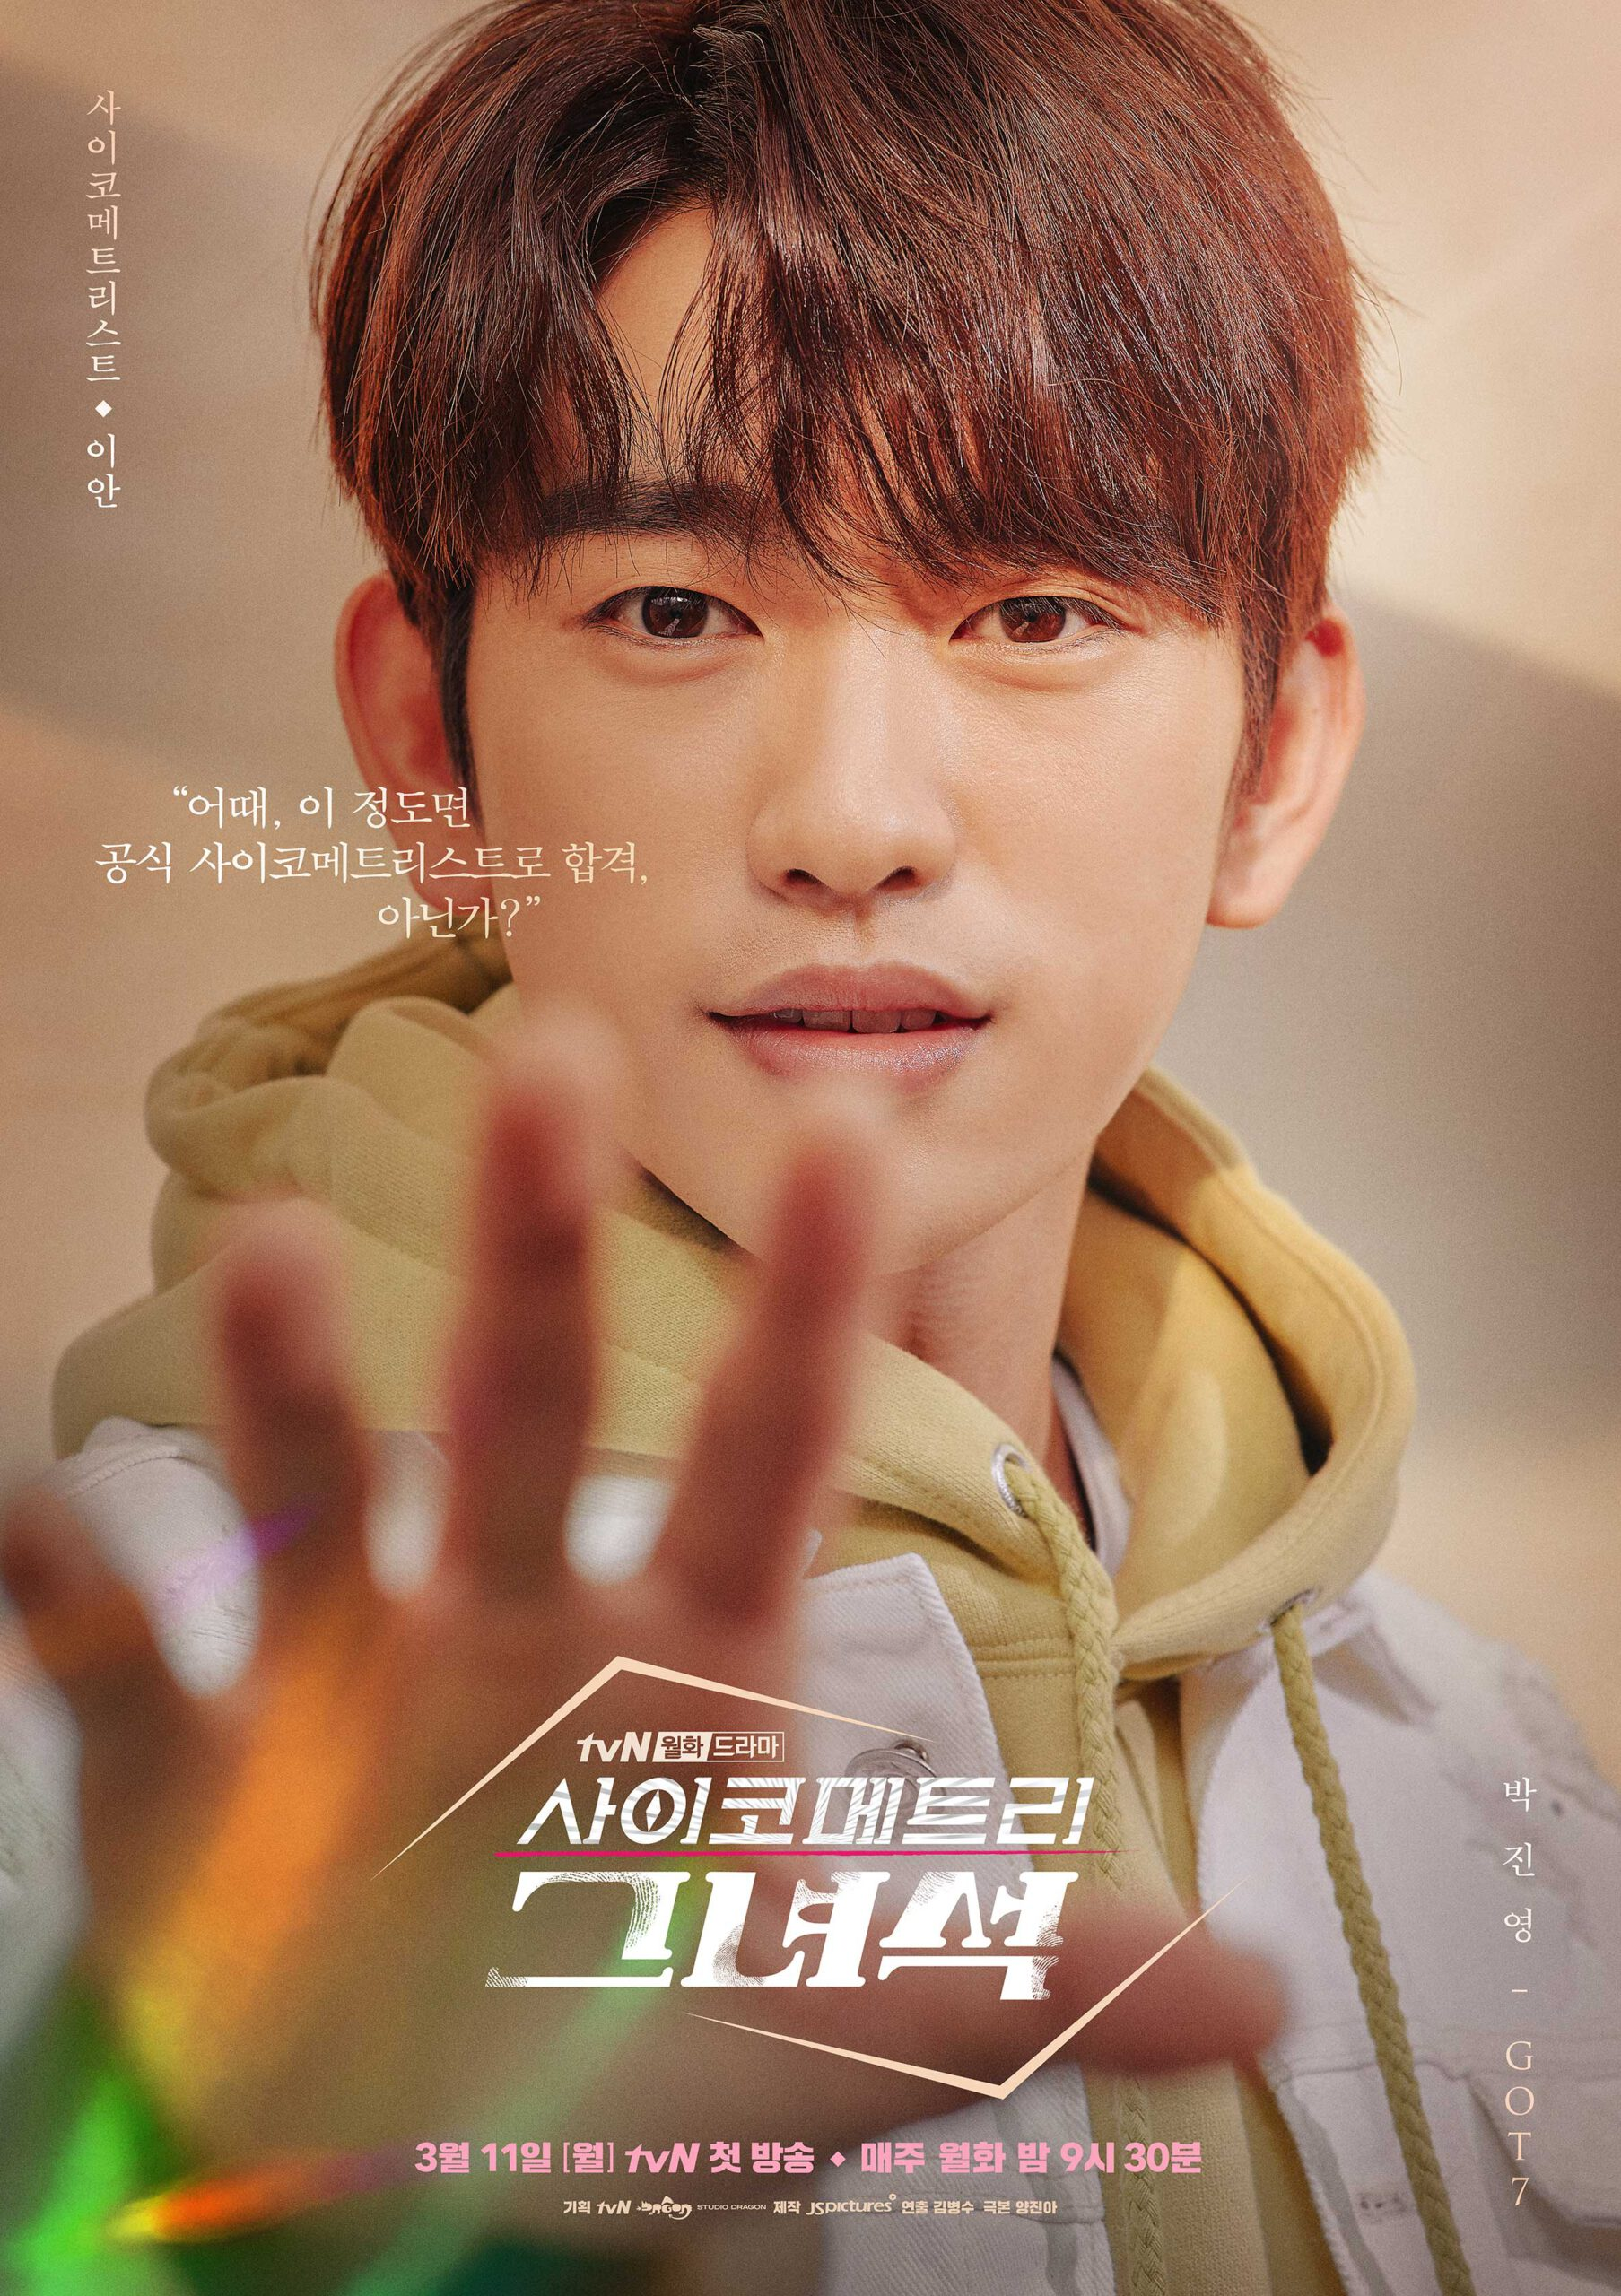 ดูหนังออนไลน์ He Is Psychometric Season 1 EP. 16 End (Soundtrack)